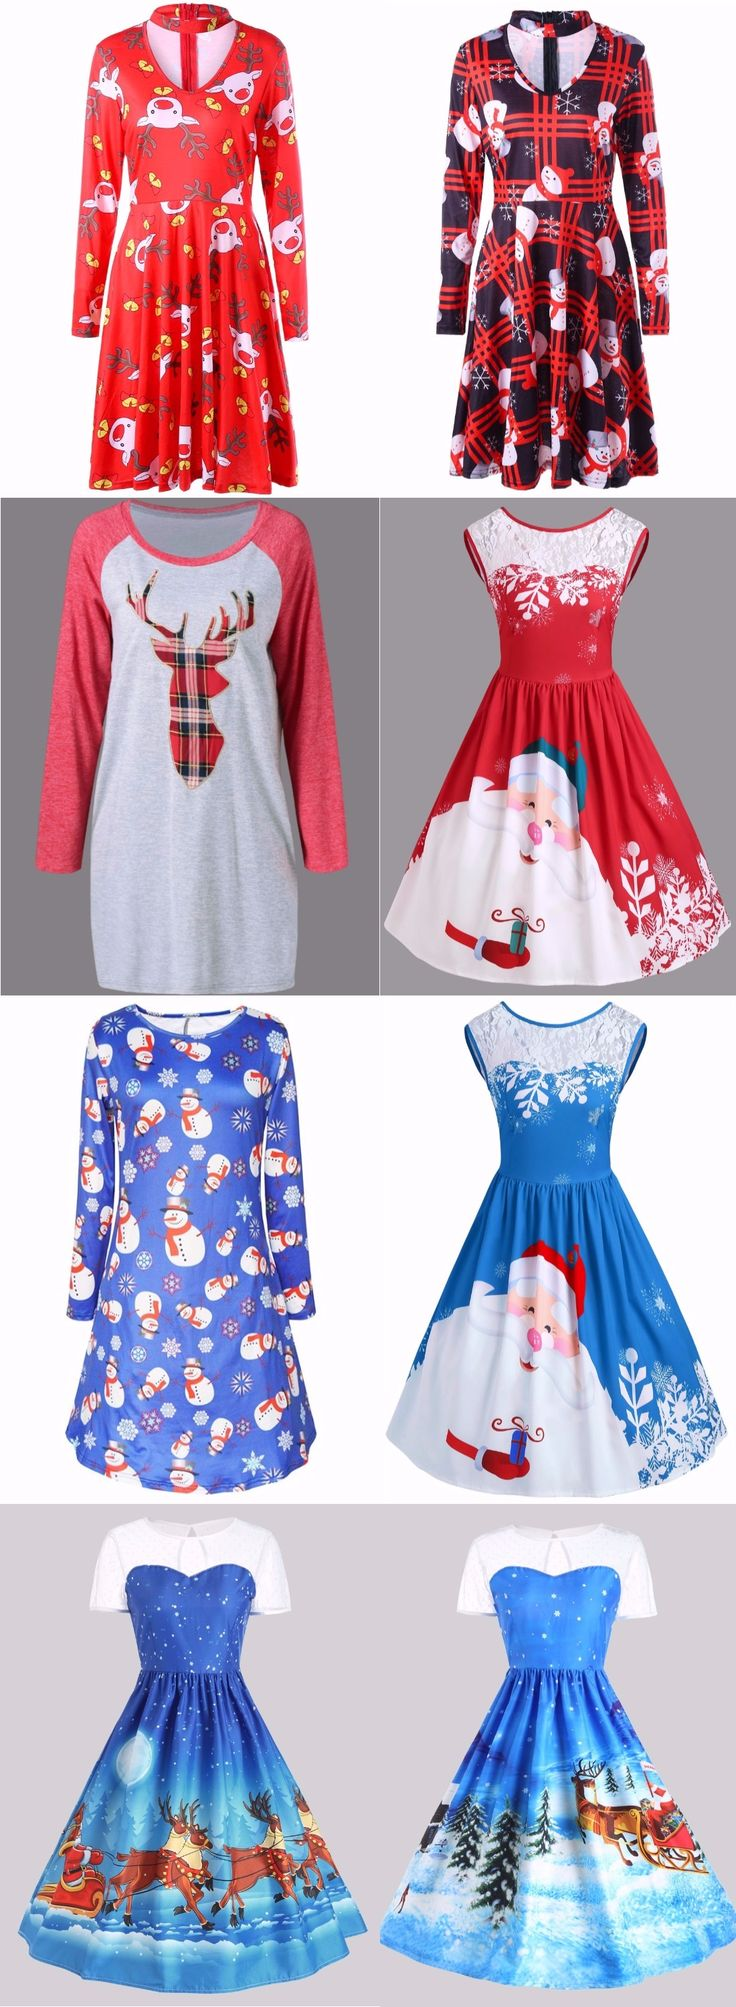 Merry Christmas Dress| Start at only $10 | Party Dress | Christmas Idea| Print Dress| Swing Dress | Snowflake Dress| Snowman Dress| Vintage Dress| Sammydress.com